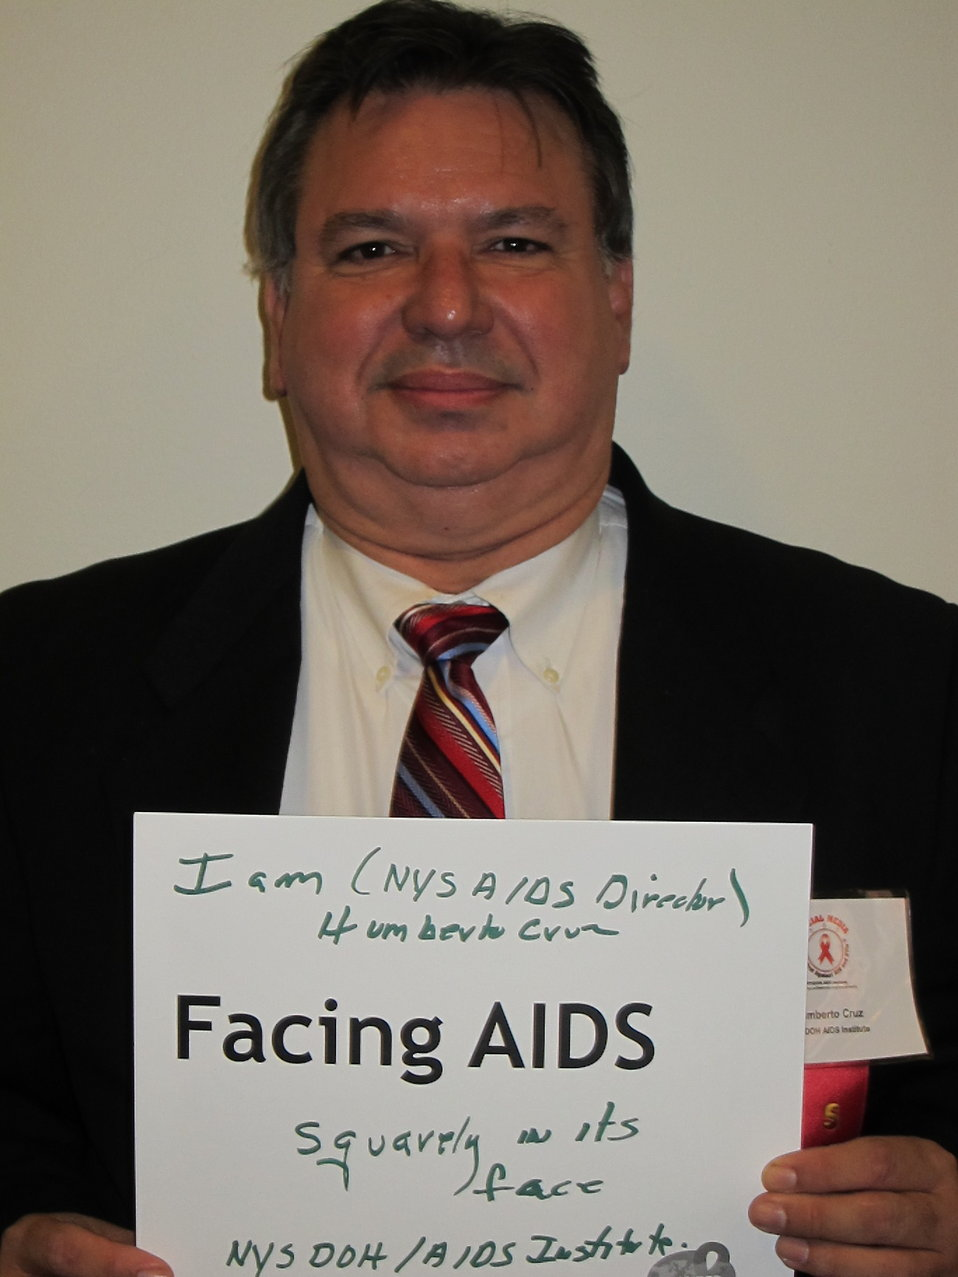 I am NYS AIDS Director, Humberto Cruz Facing AIDS squarely in its face. NYSDOH/AIDSinstitute